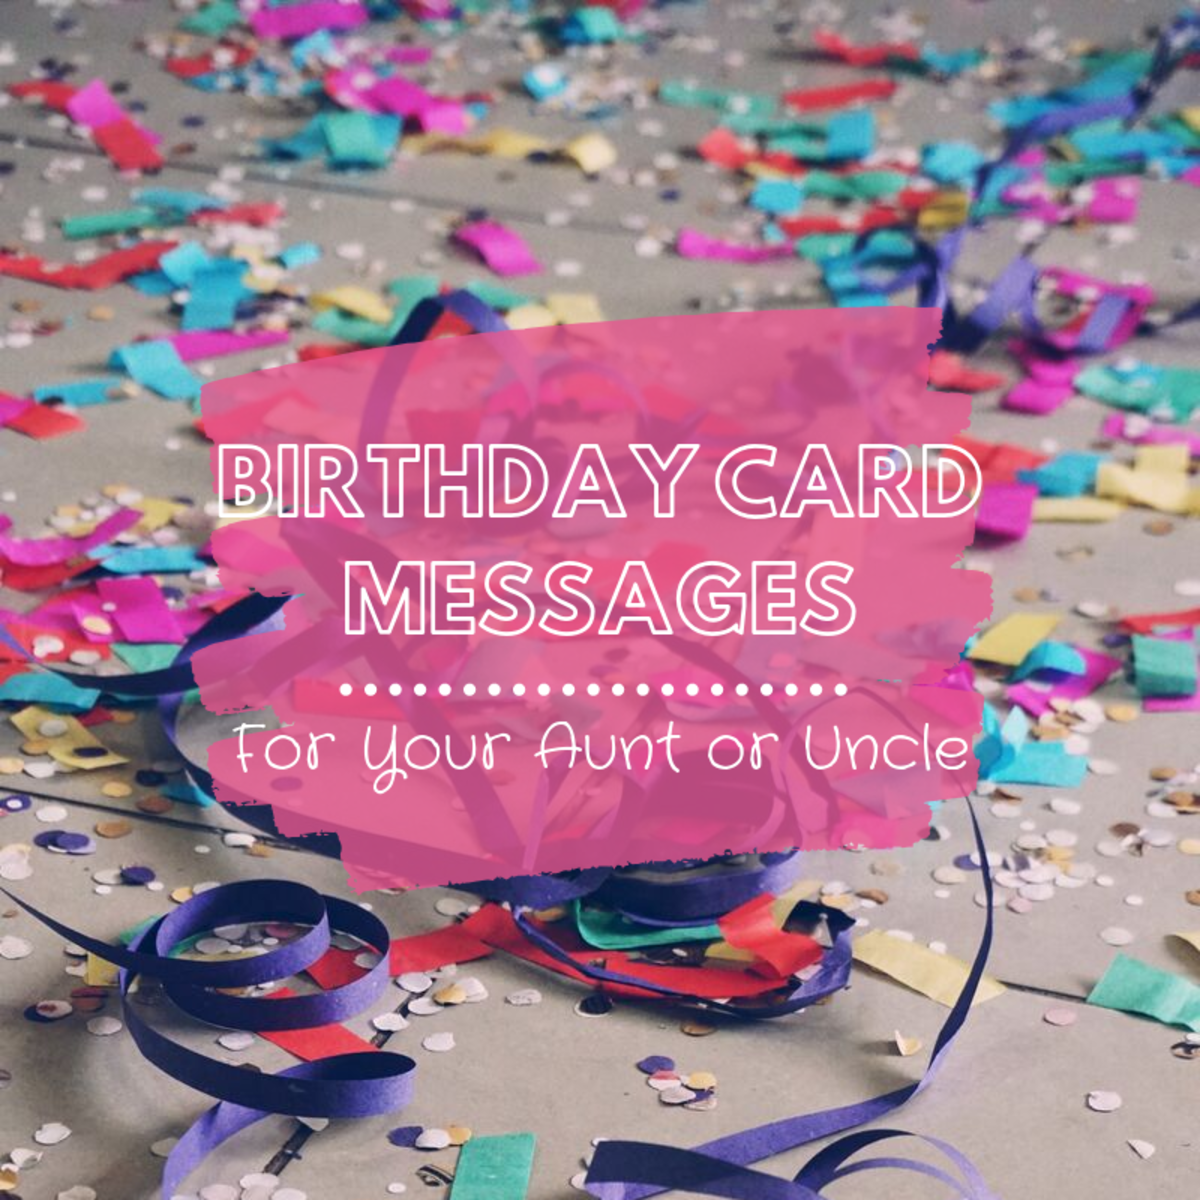 Aunts and uncles are like parents but more fun—they deserve awesome birthday wishes!